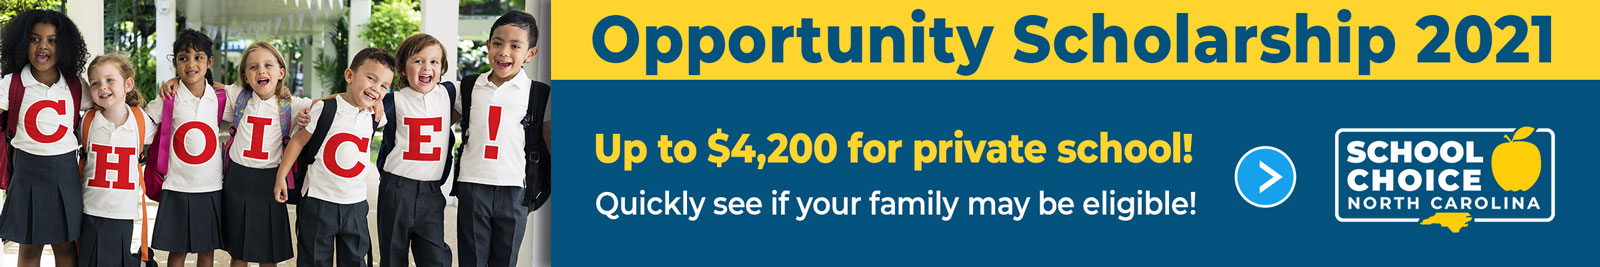 NC Opportunity Scholarship 2021. Get up to $4,200 for private school. Quickly check your family's eligibility!